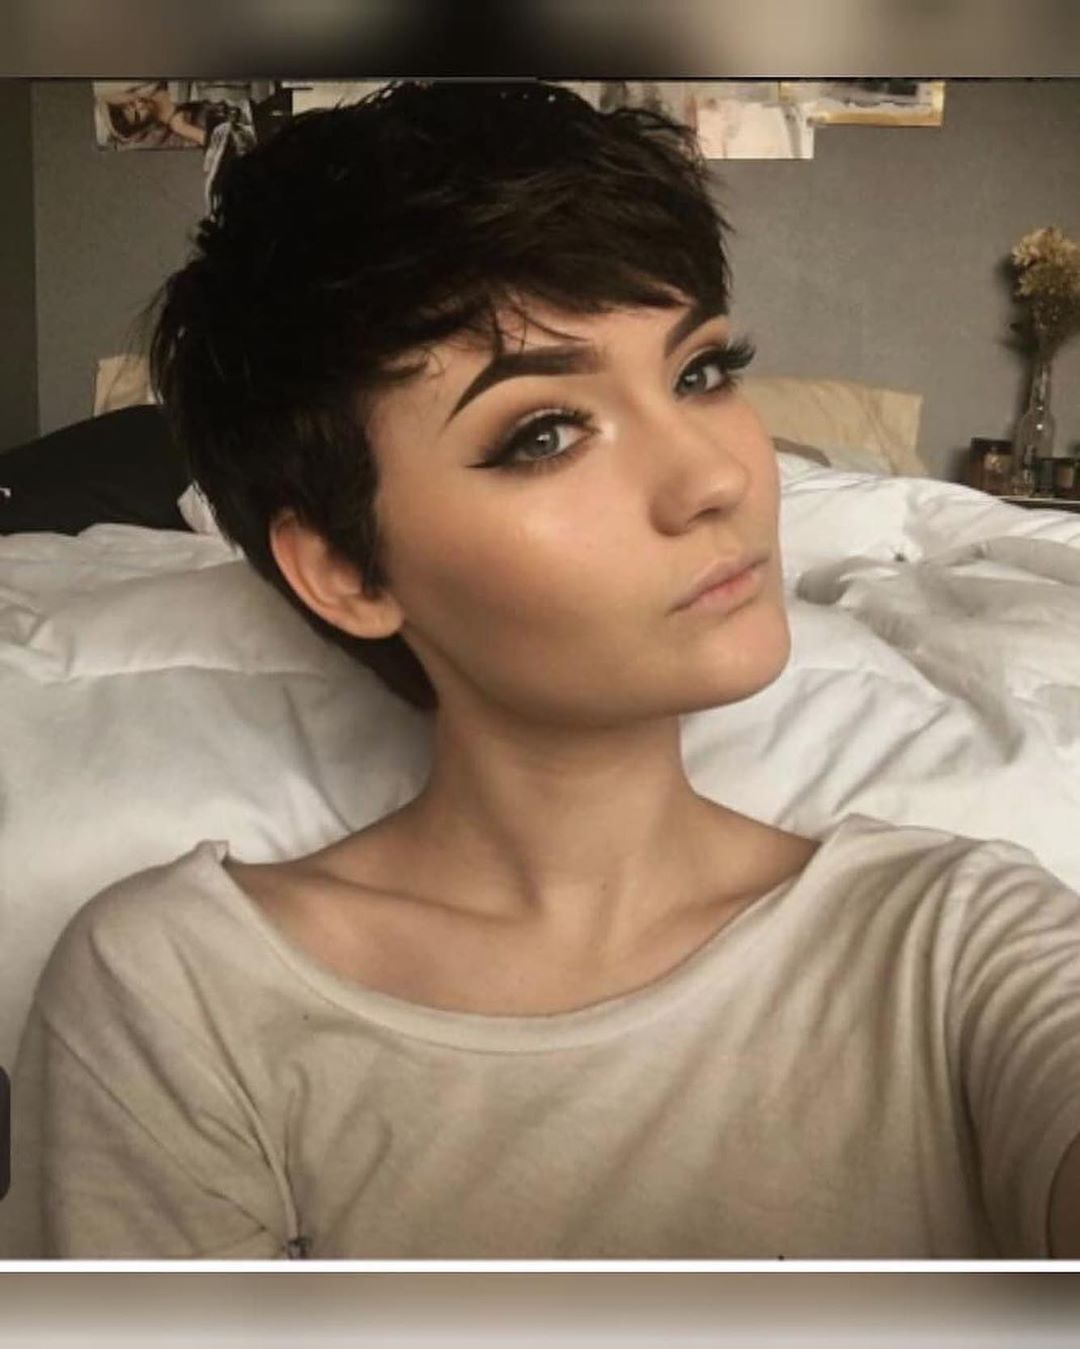 Shorthair Exclusive On Instagram Idees Cheveux Courts Cheveux Courts Coupe De Cheveux